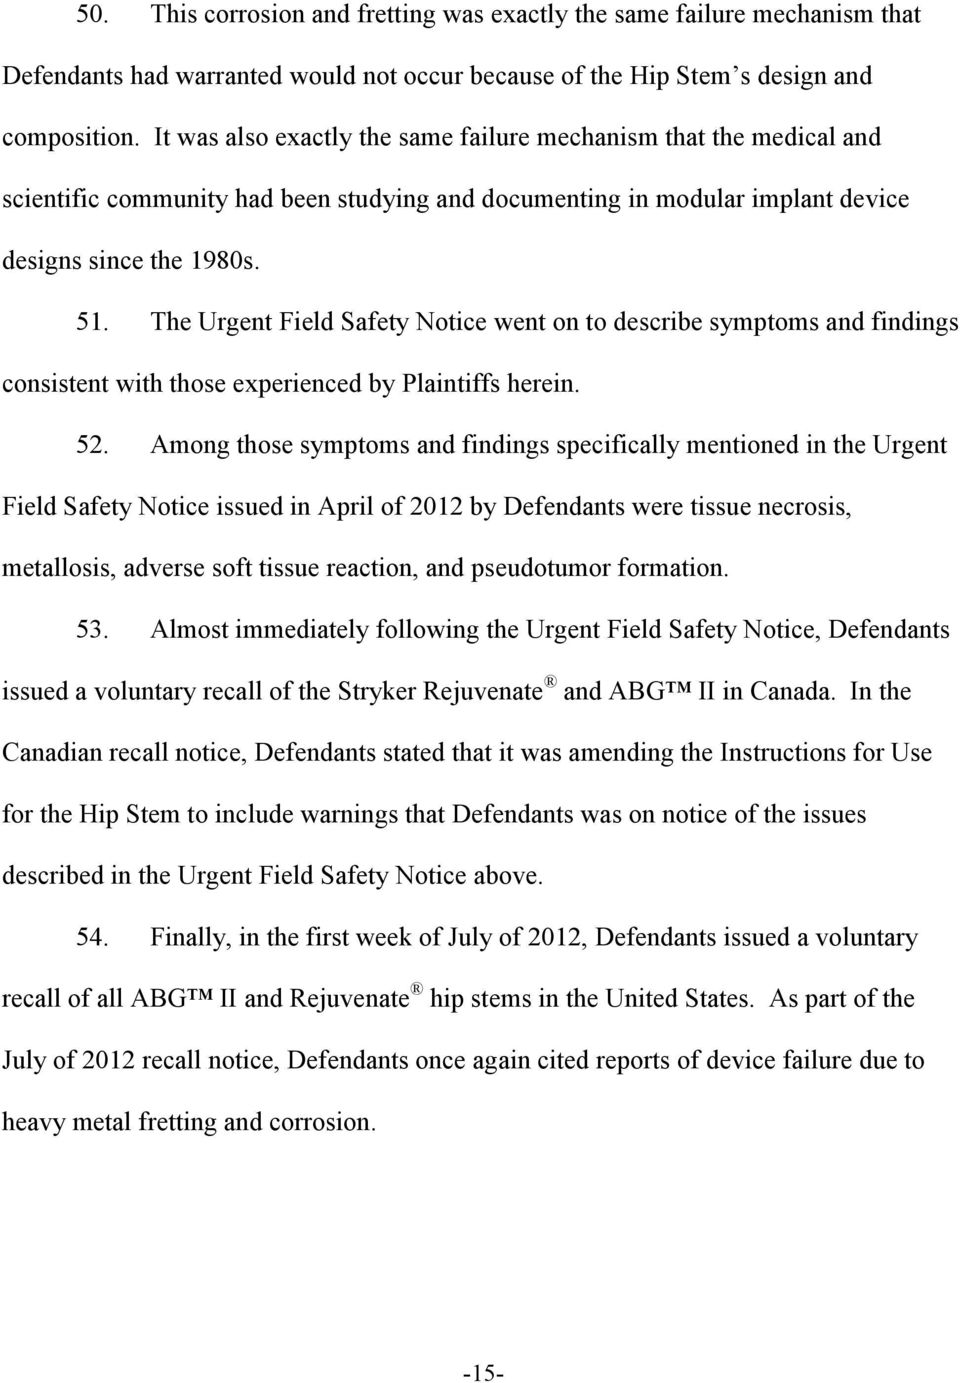 The Urgent Field Safety Notice went on to describe symptoms and findings consistent with those experienced by Plaintiffs herein. 52.